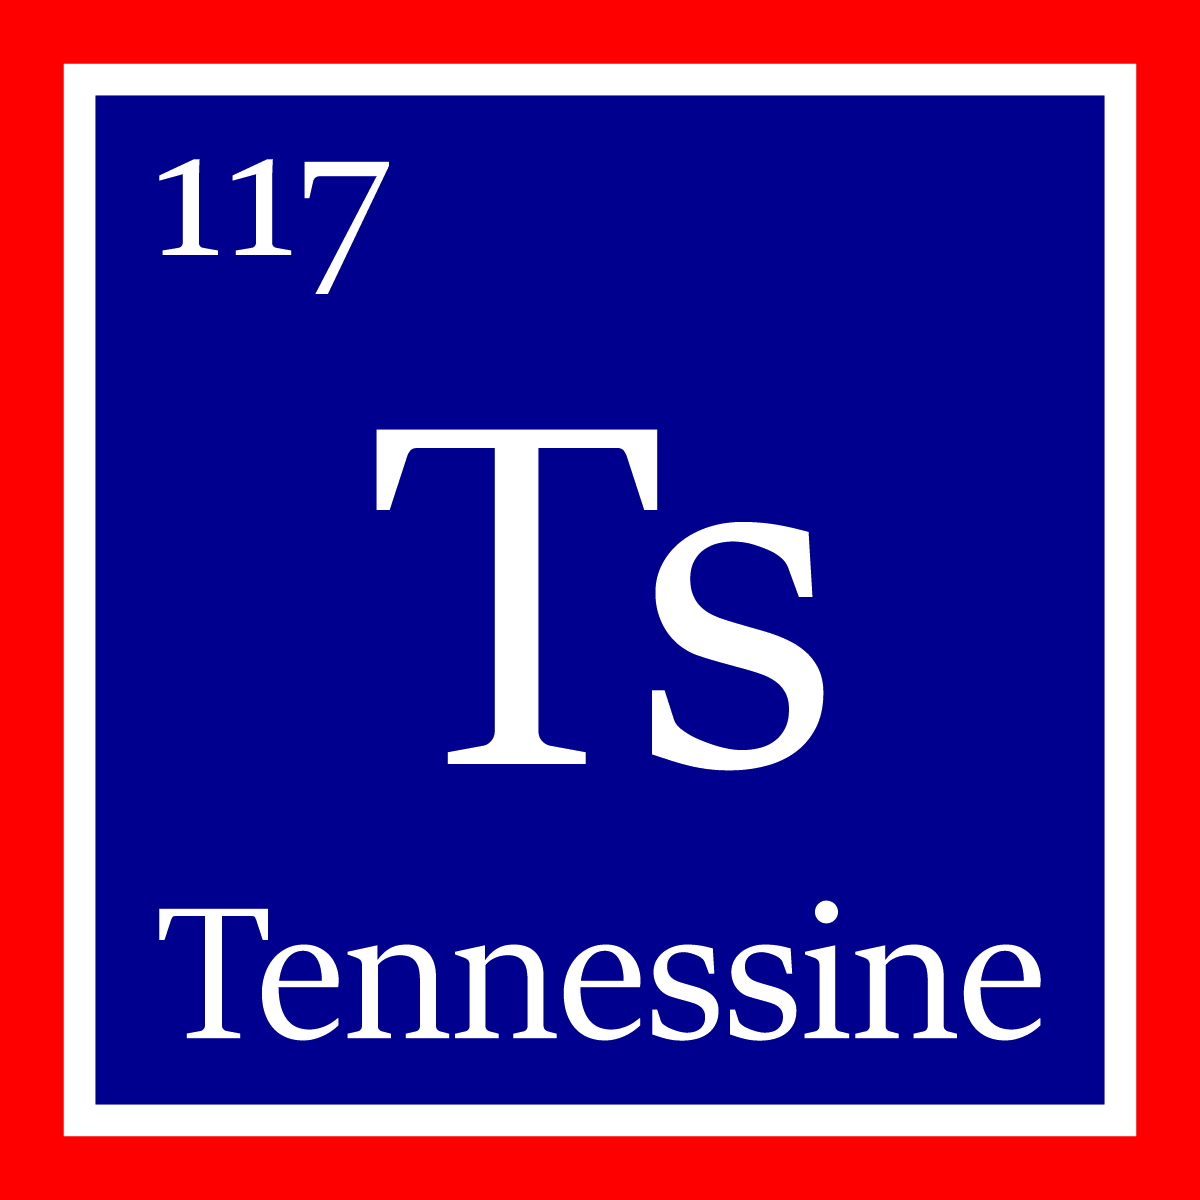 Tennessine element 117 officially named the new element tennessine is denoted by the symbol ts on the periodic table credit ornl urtaz